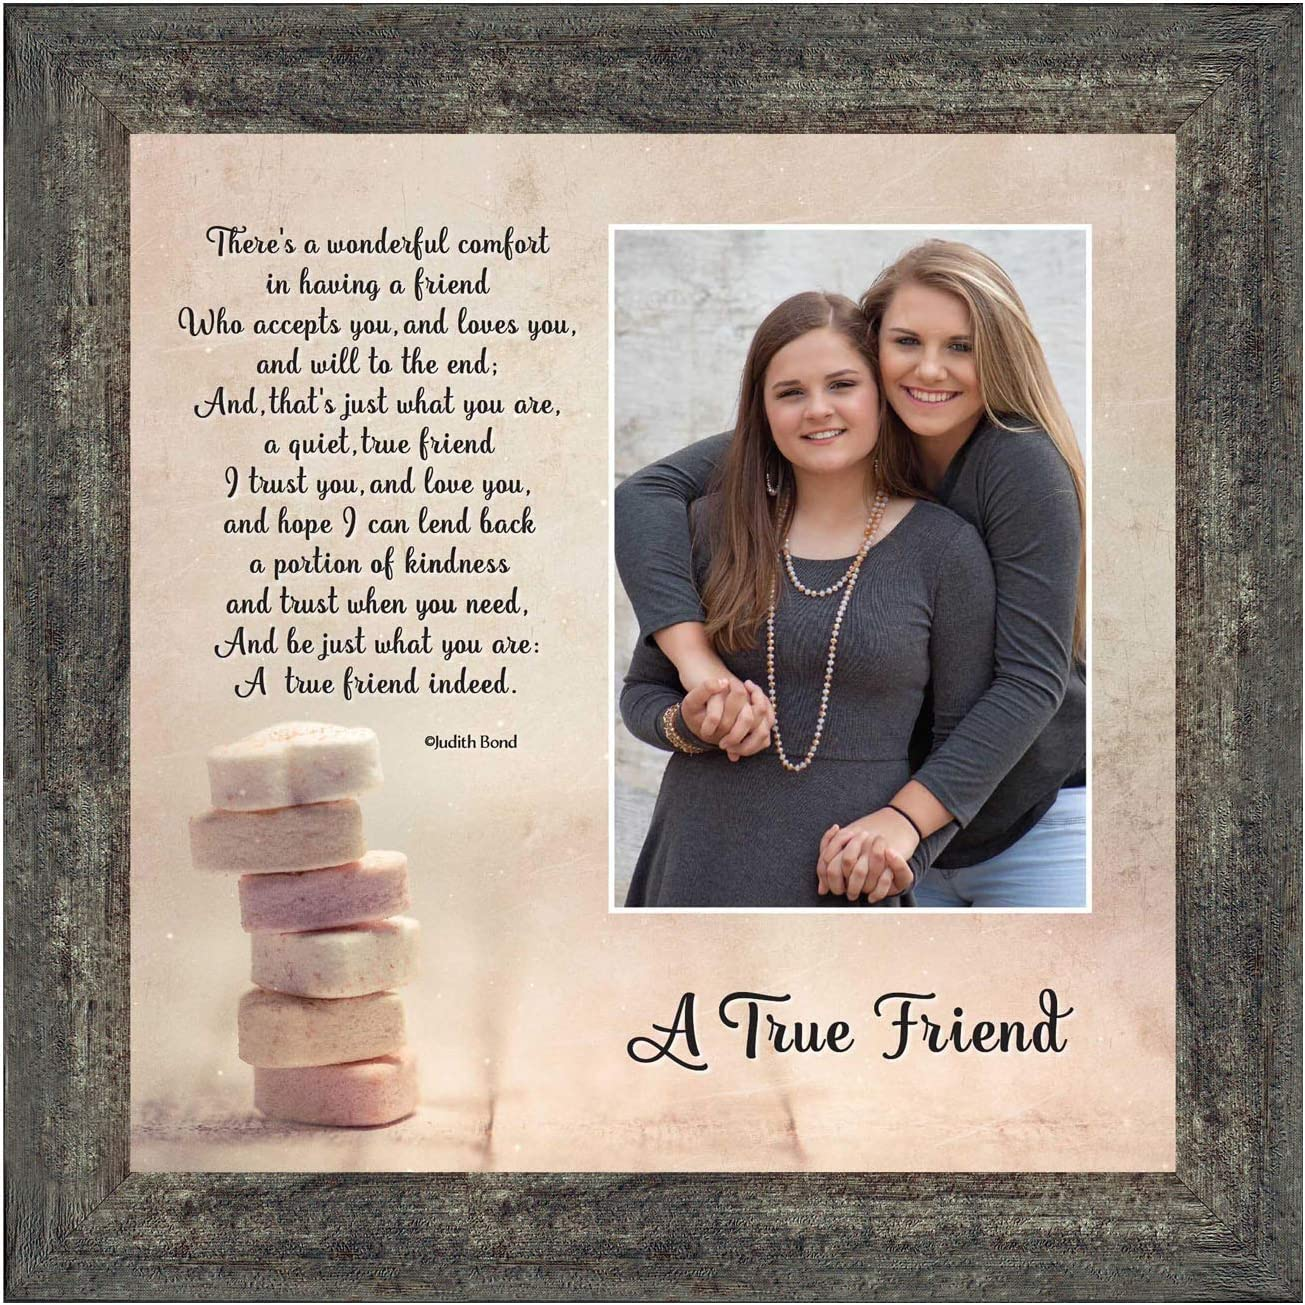 Crossroads Home Décor Birthday Gifts for Women, Bridesmaid Gifts, Friendship Gift for Women, Thank You Gifts, Housewarming Gift, A True Friend 4x6 Picture Frame, 6312BW